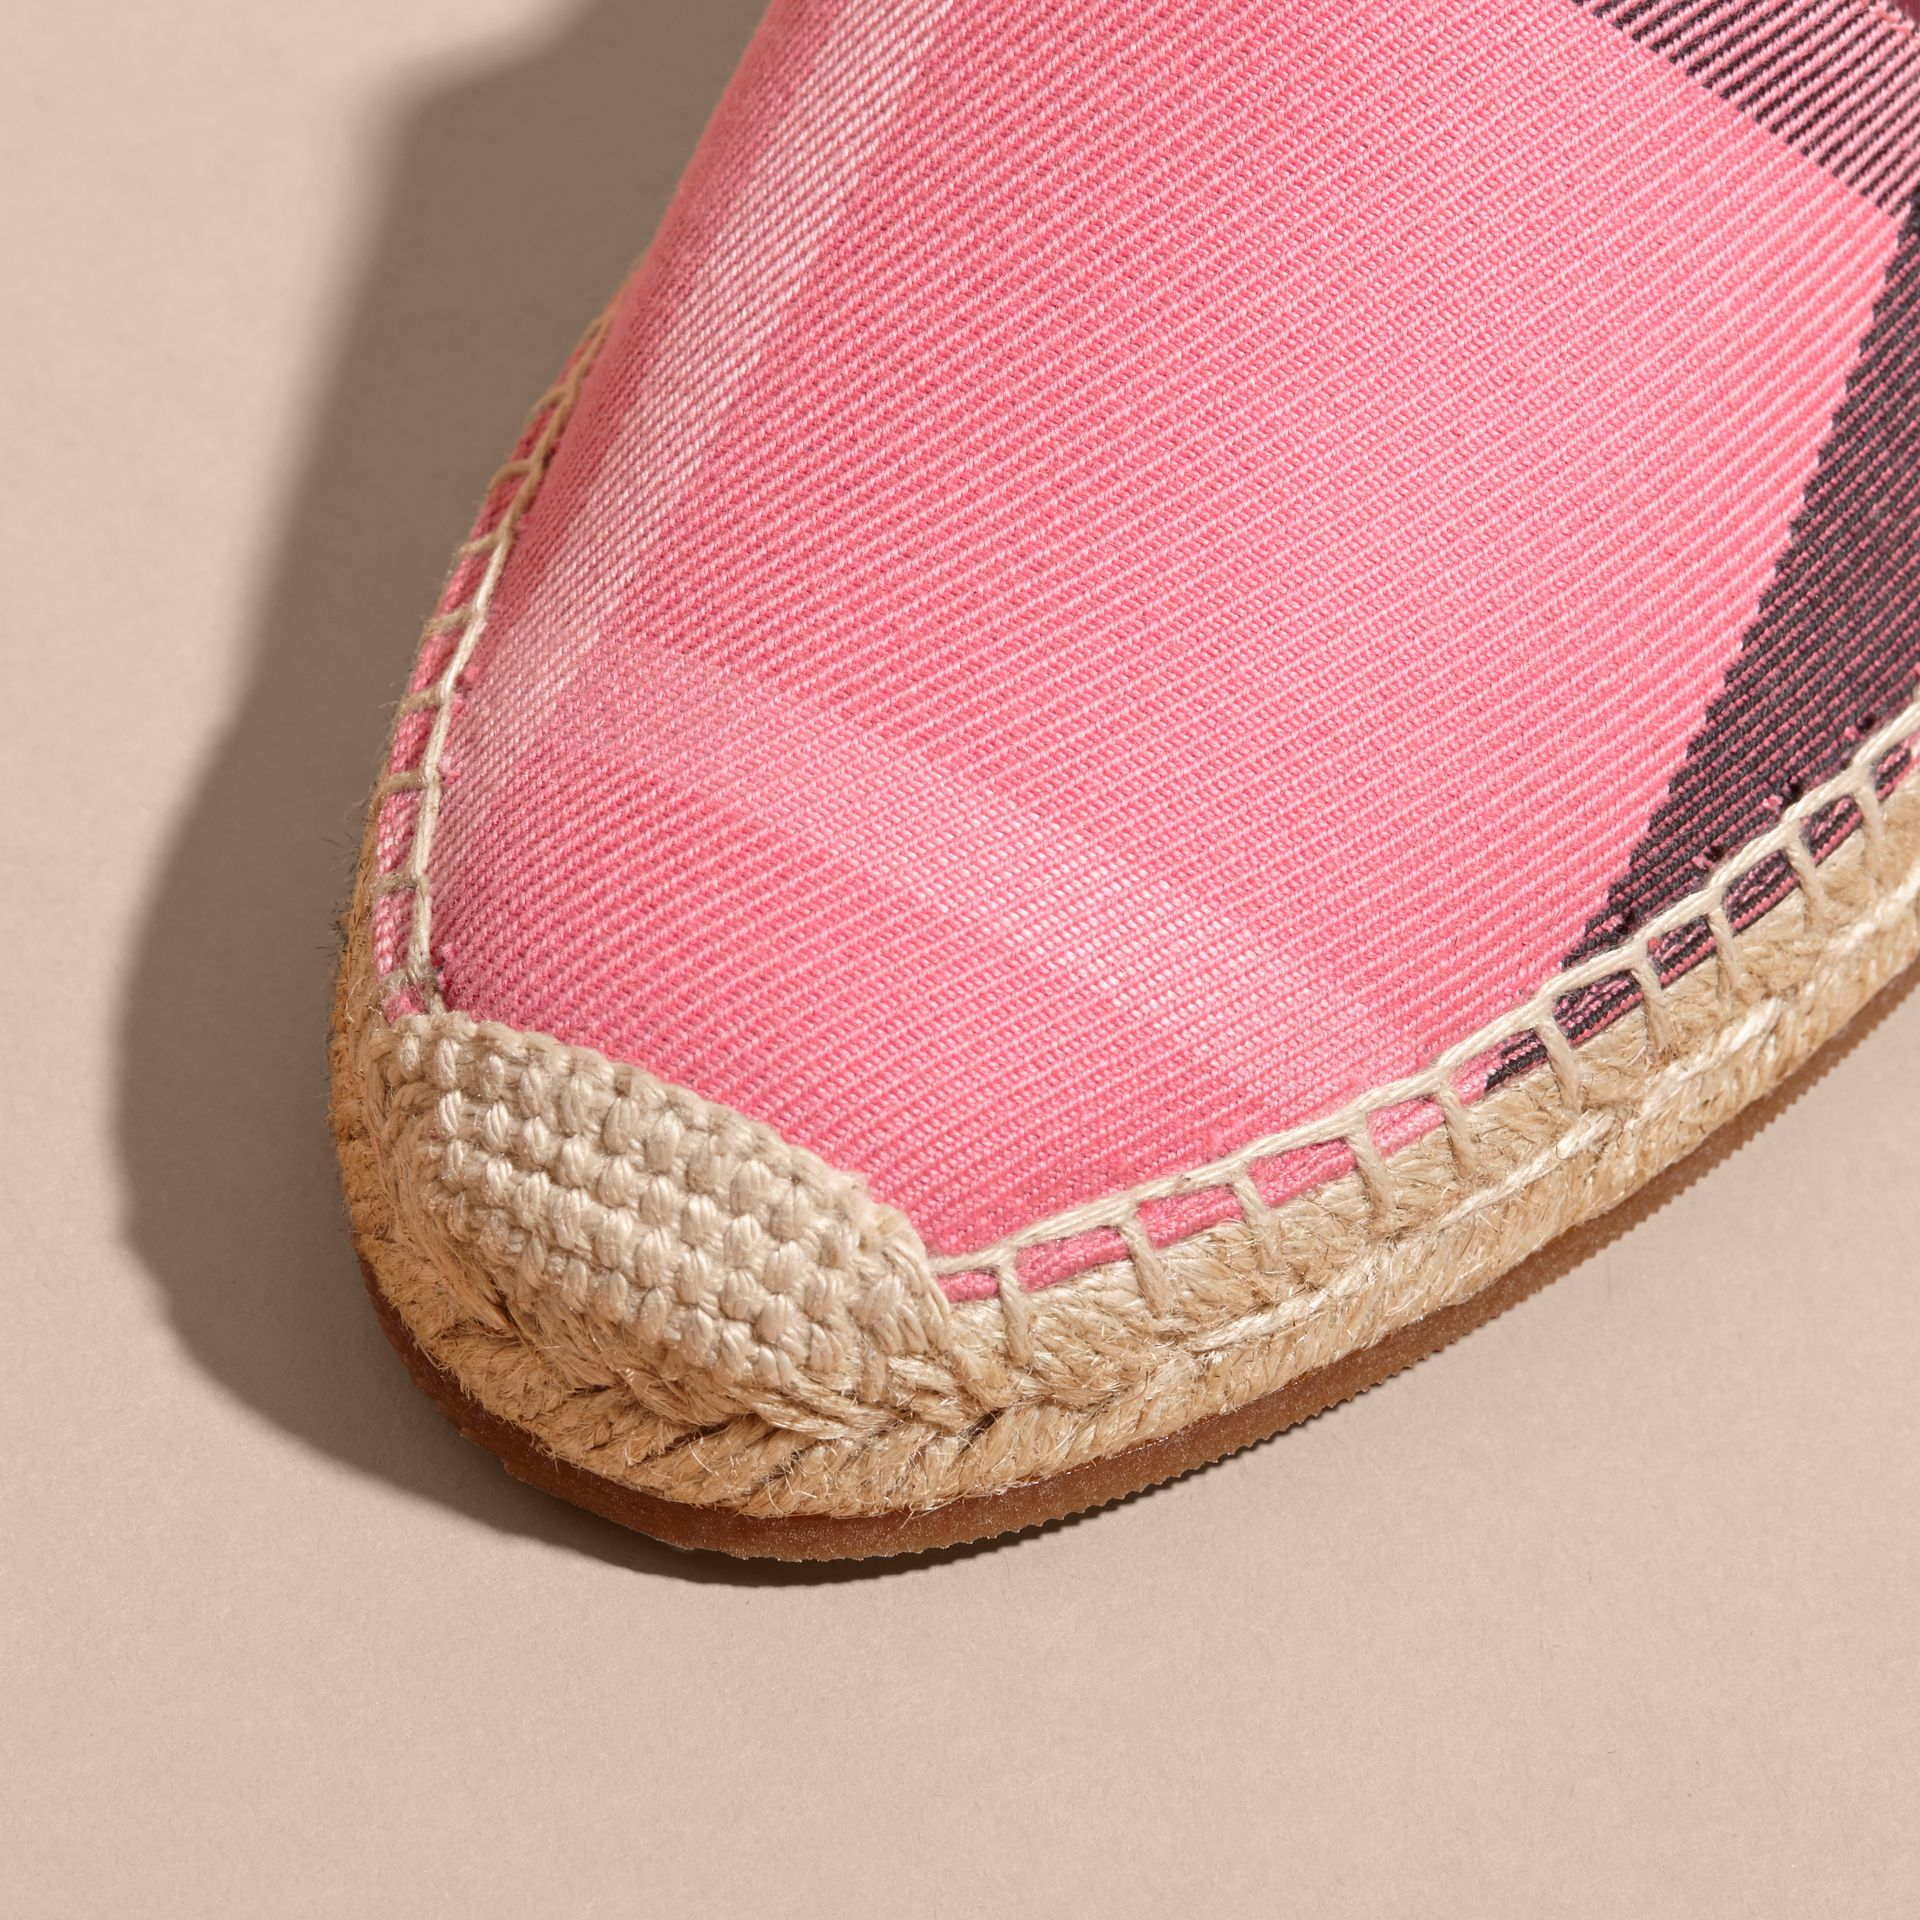 Rose pink Leather Trim Canvas Check Espadrilles Rose Pink - gallery image 2